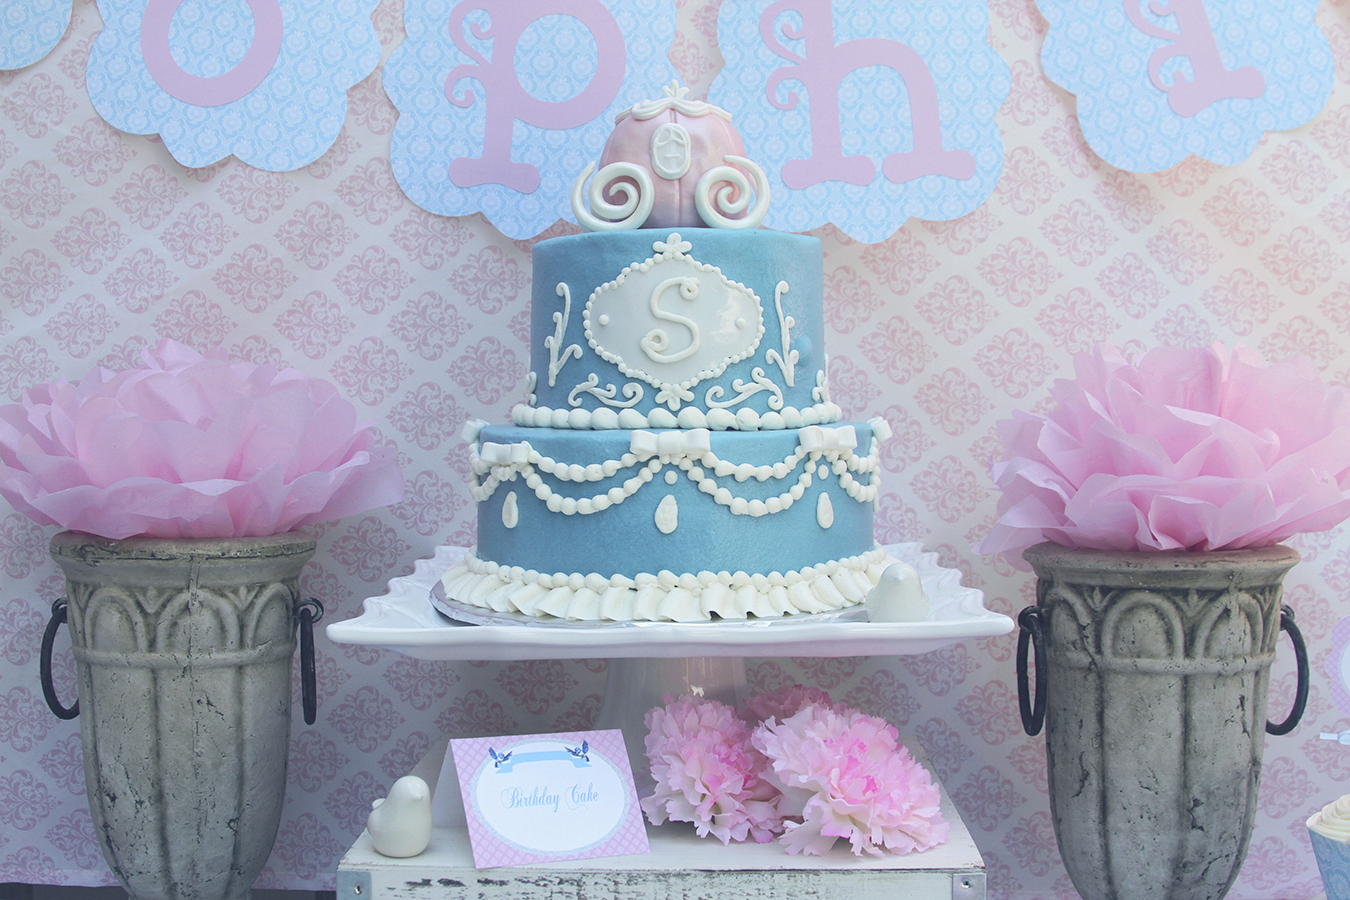 A 4th Birthday Fit For Princess This Cinderella Inspired Is The Perfect Royal Celebration We Created Adorable Fairy Tale Event Very